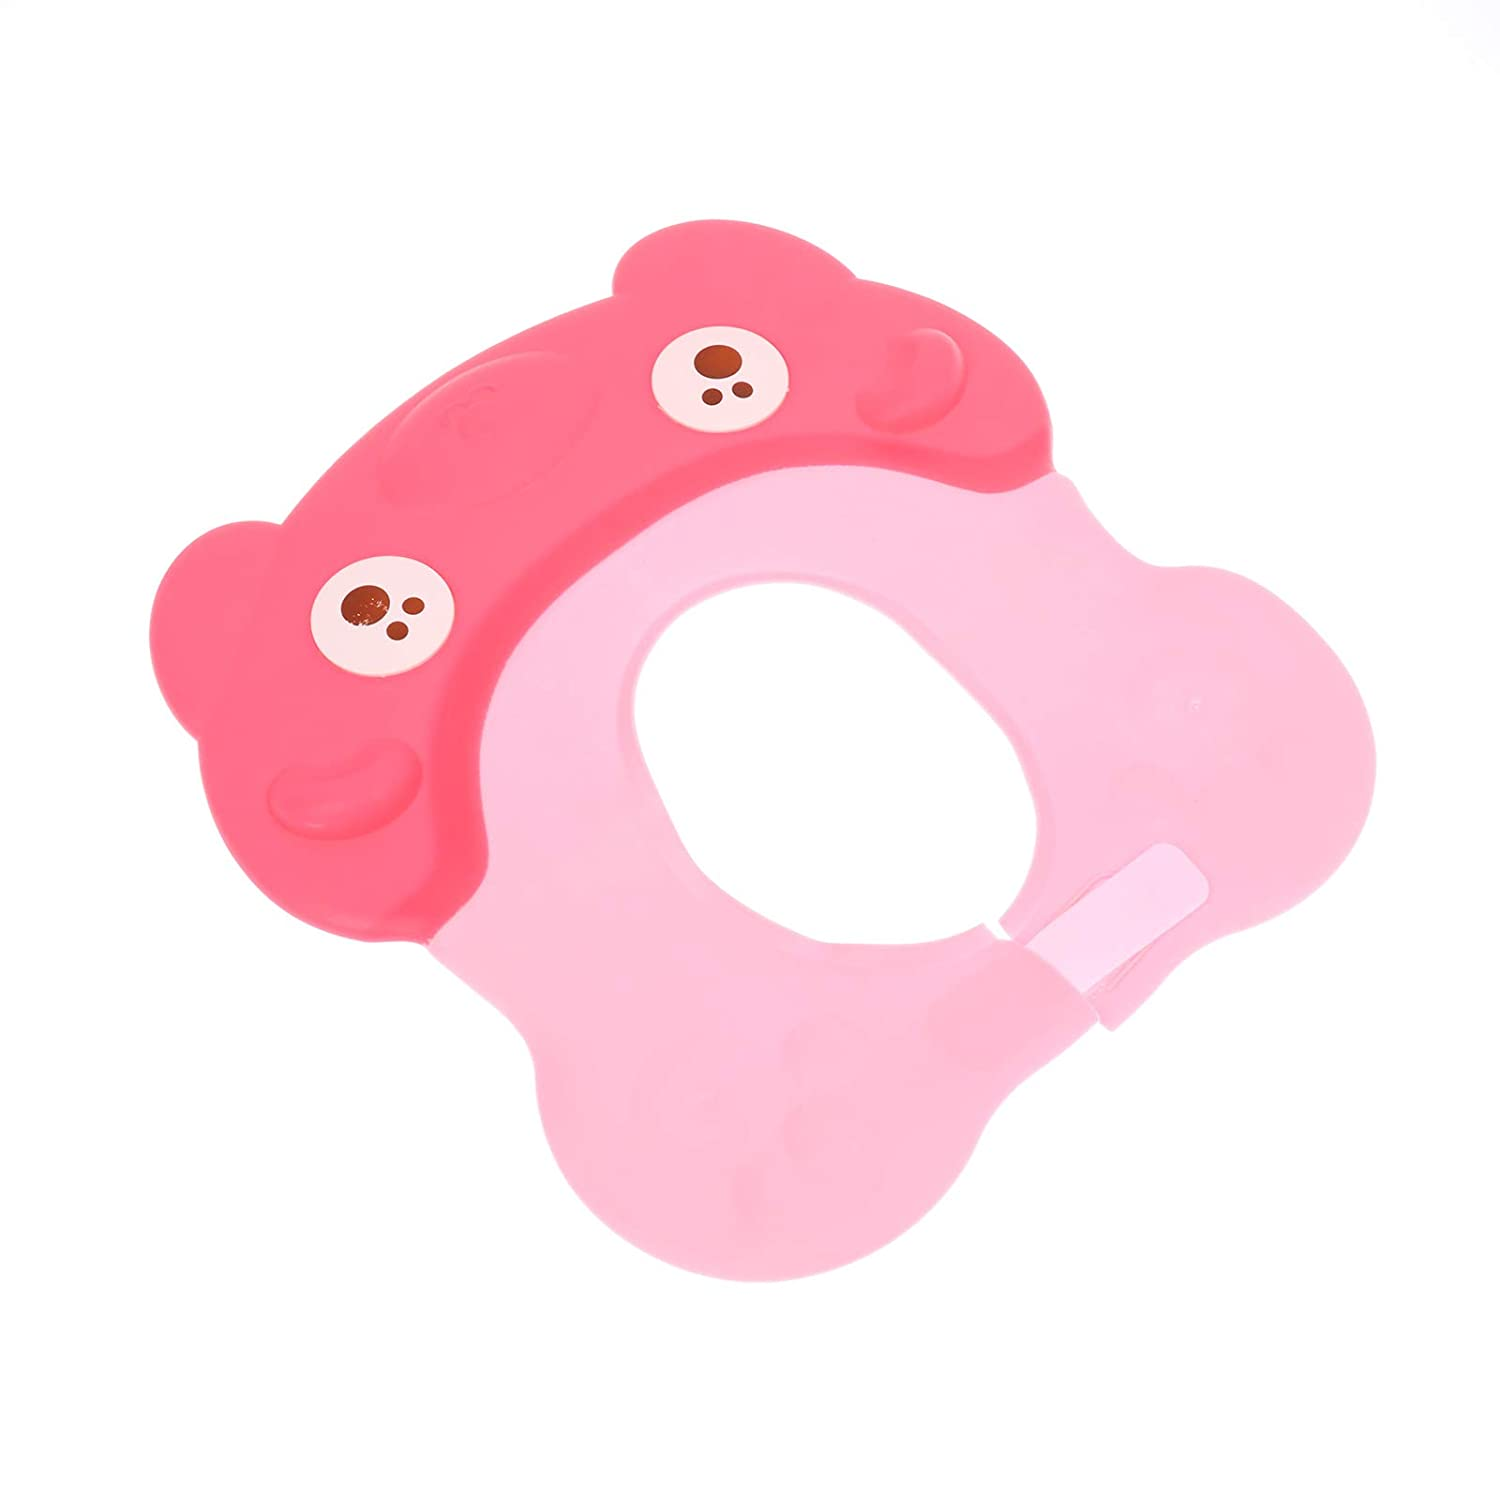 Baby Shower Cap Visor with Ear Protection for Bathing Washing Hair, Soft Hat Adjustable Waterproof Shampoo Shower Cap Bathing Hat for Toddler, Kids, Girls, Boys, Children (Pink)